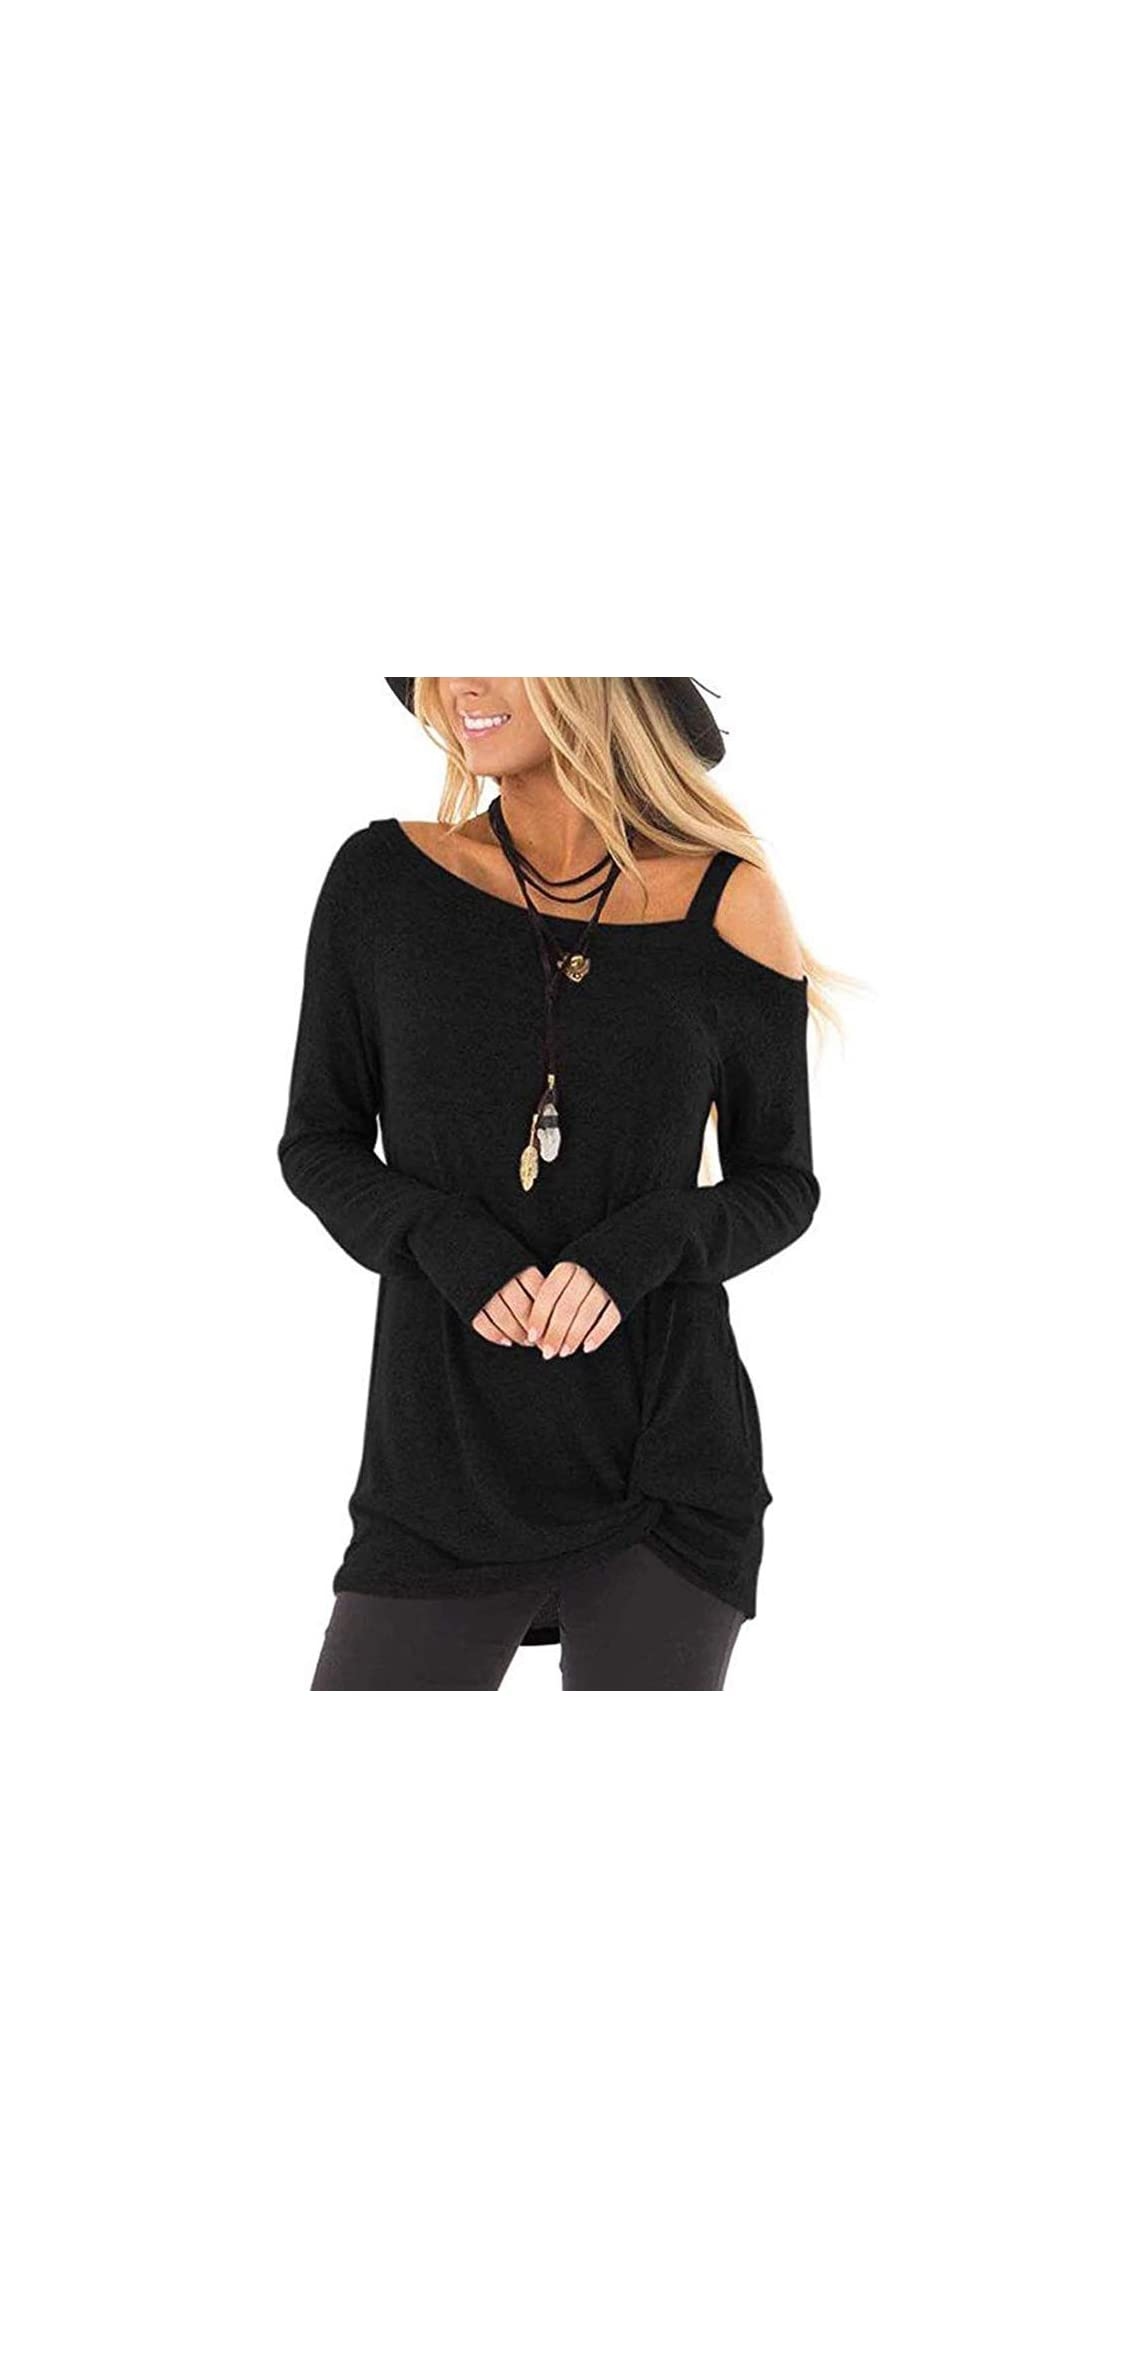 Women's Casual Solid T Shirts Cold Shoulder Side Twist